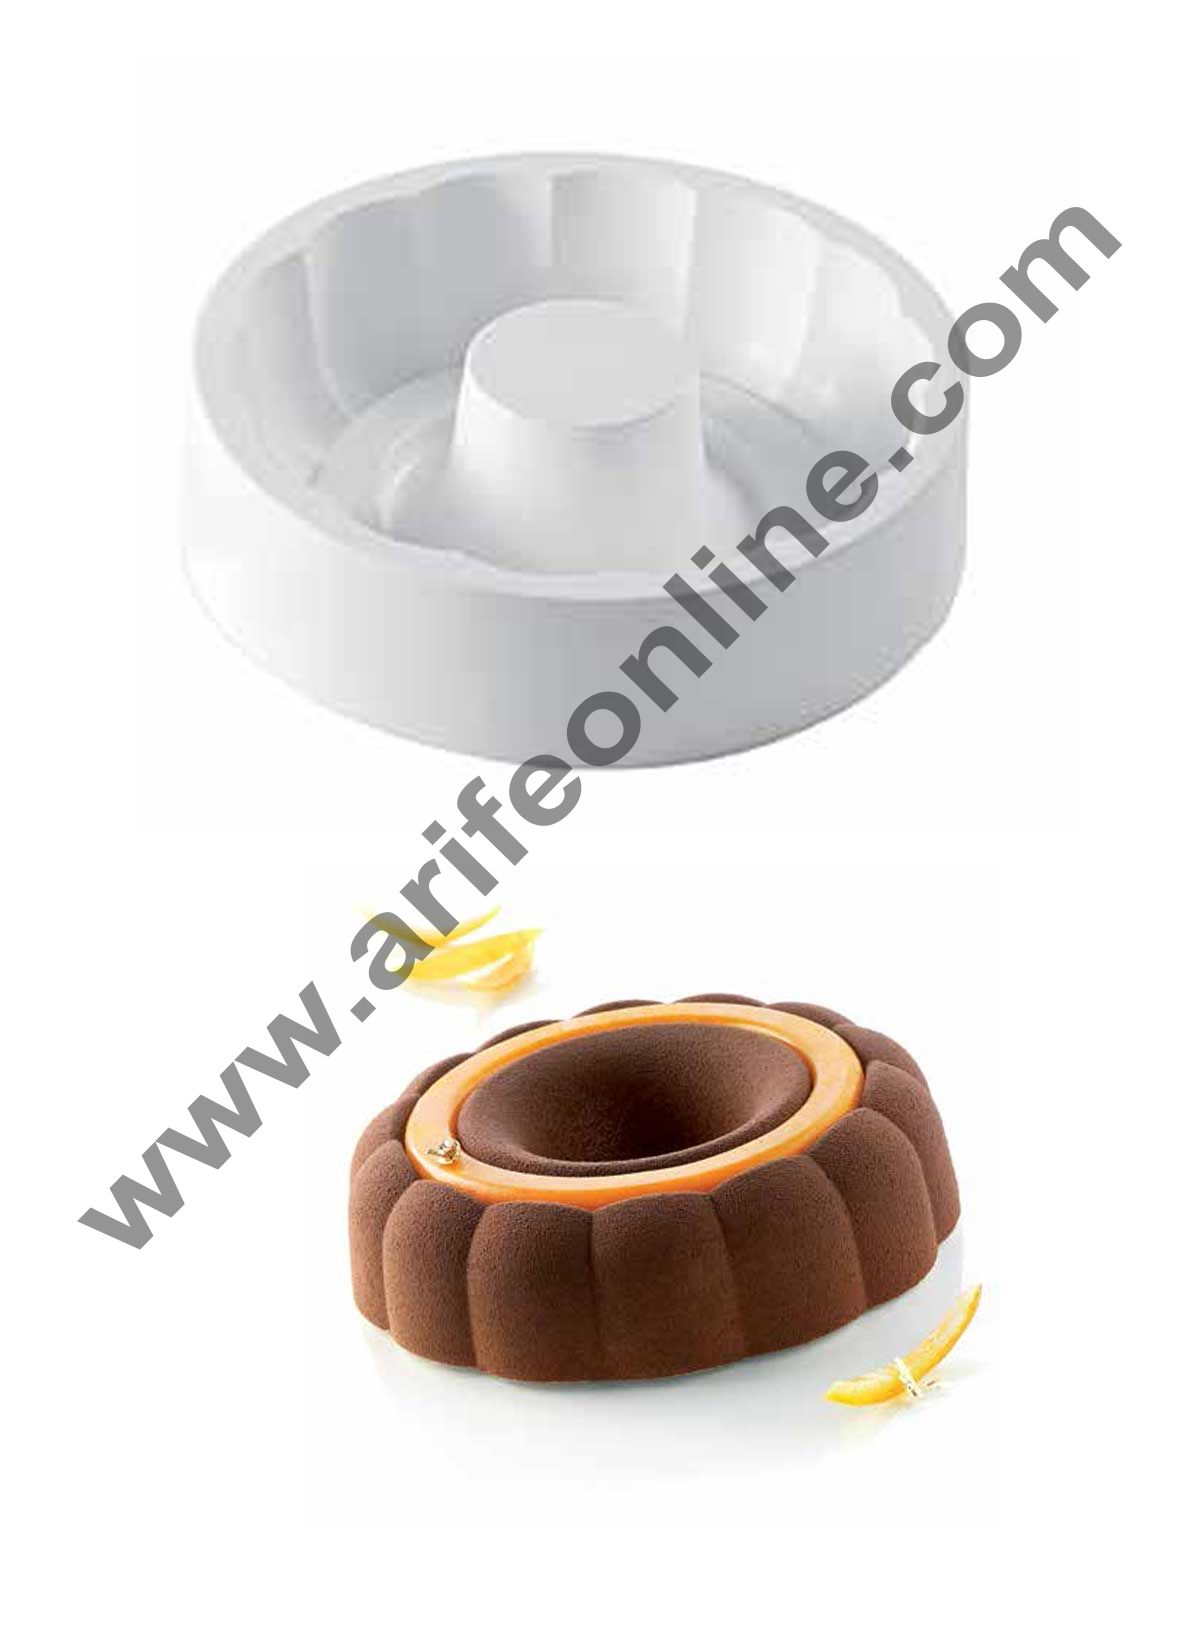 Cake Decor Silicon Armony Design Cake Mould Mousse Cake Mould Silicon Moulds